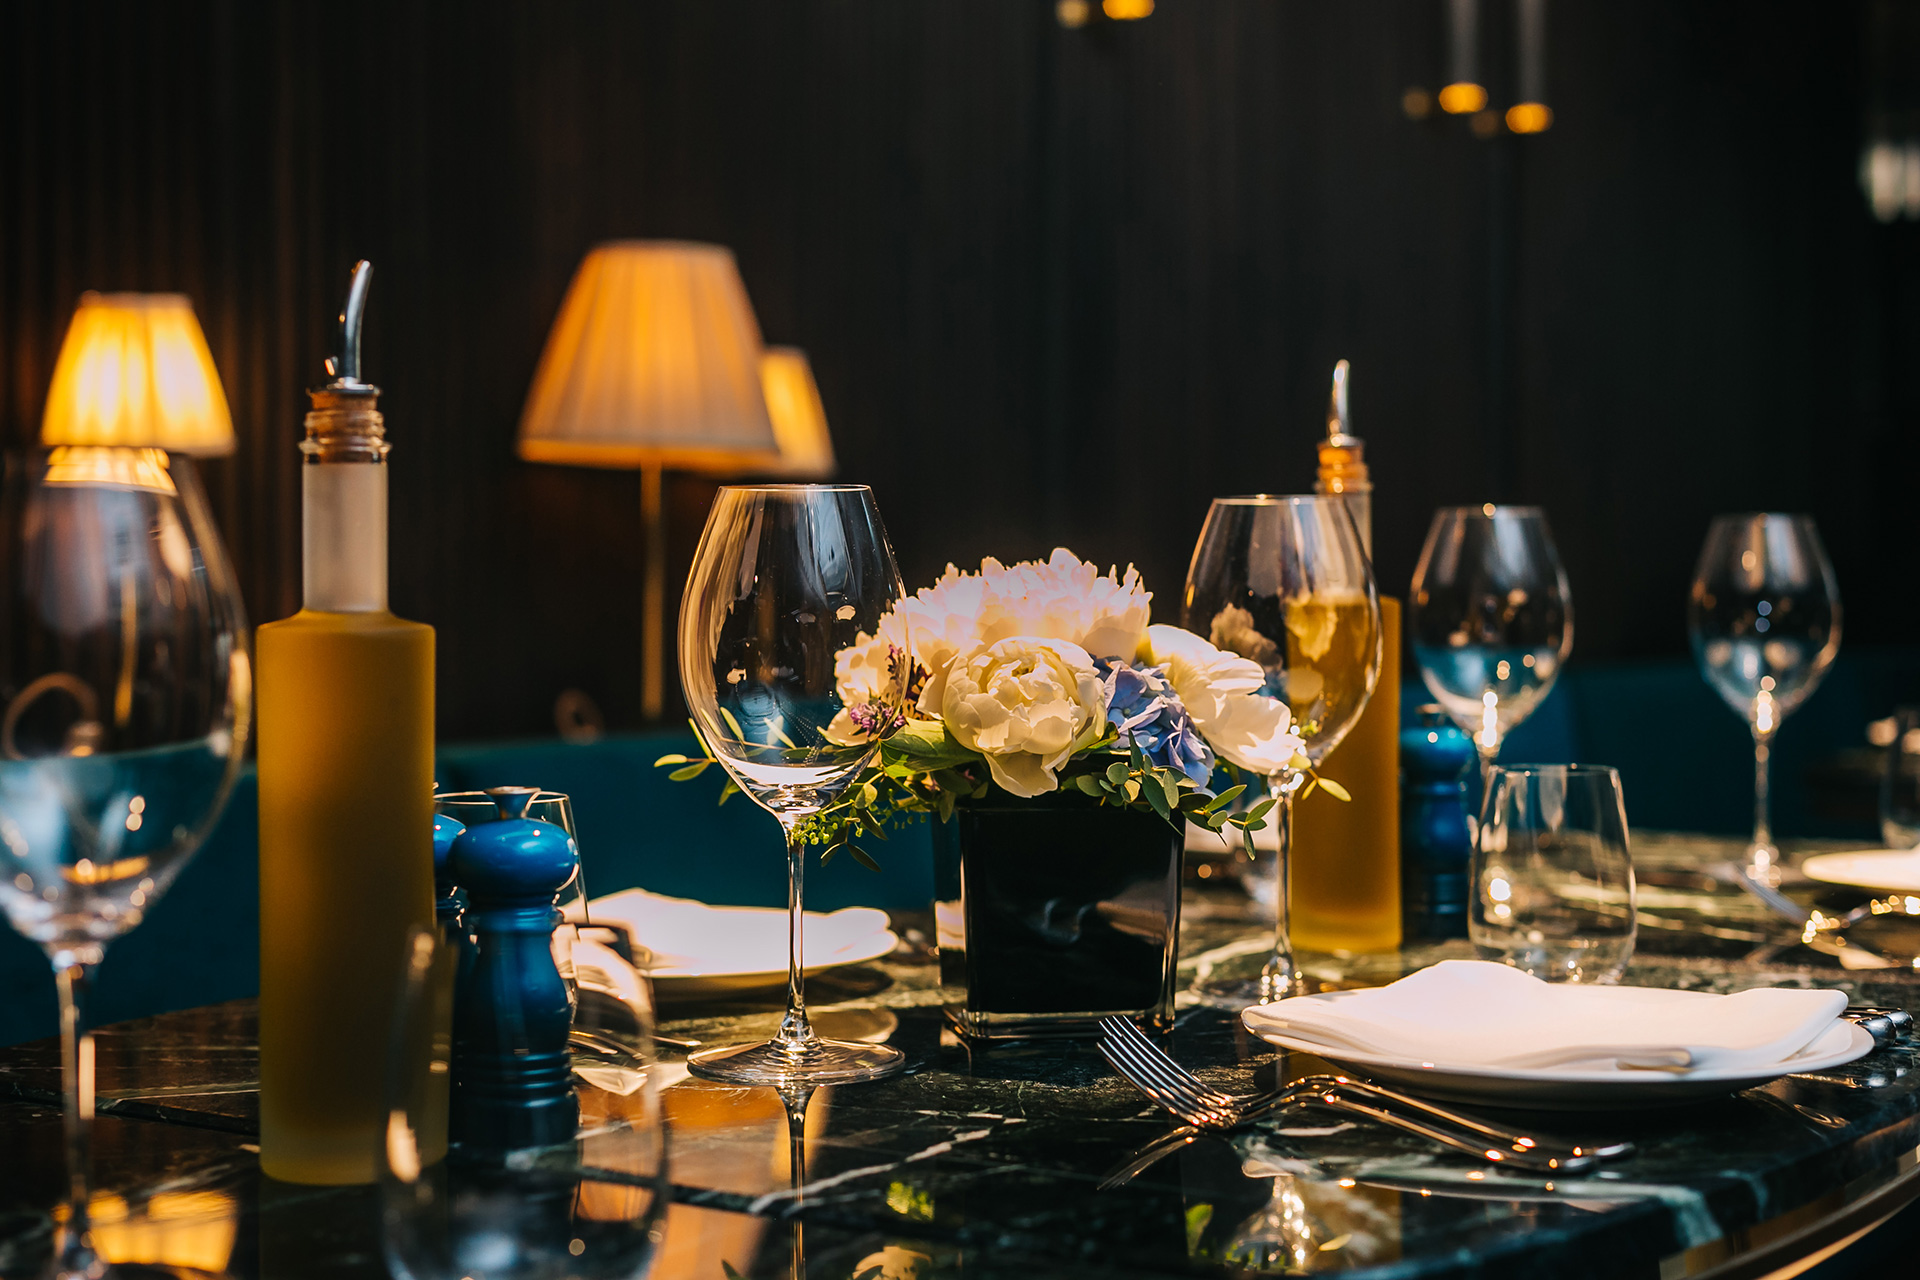 served-table-with-wine-glasses-plates